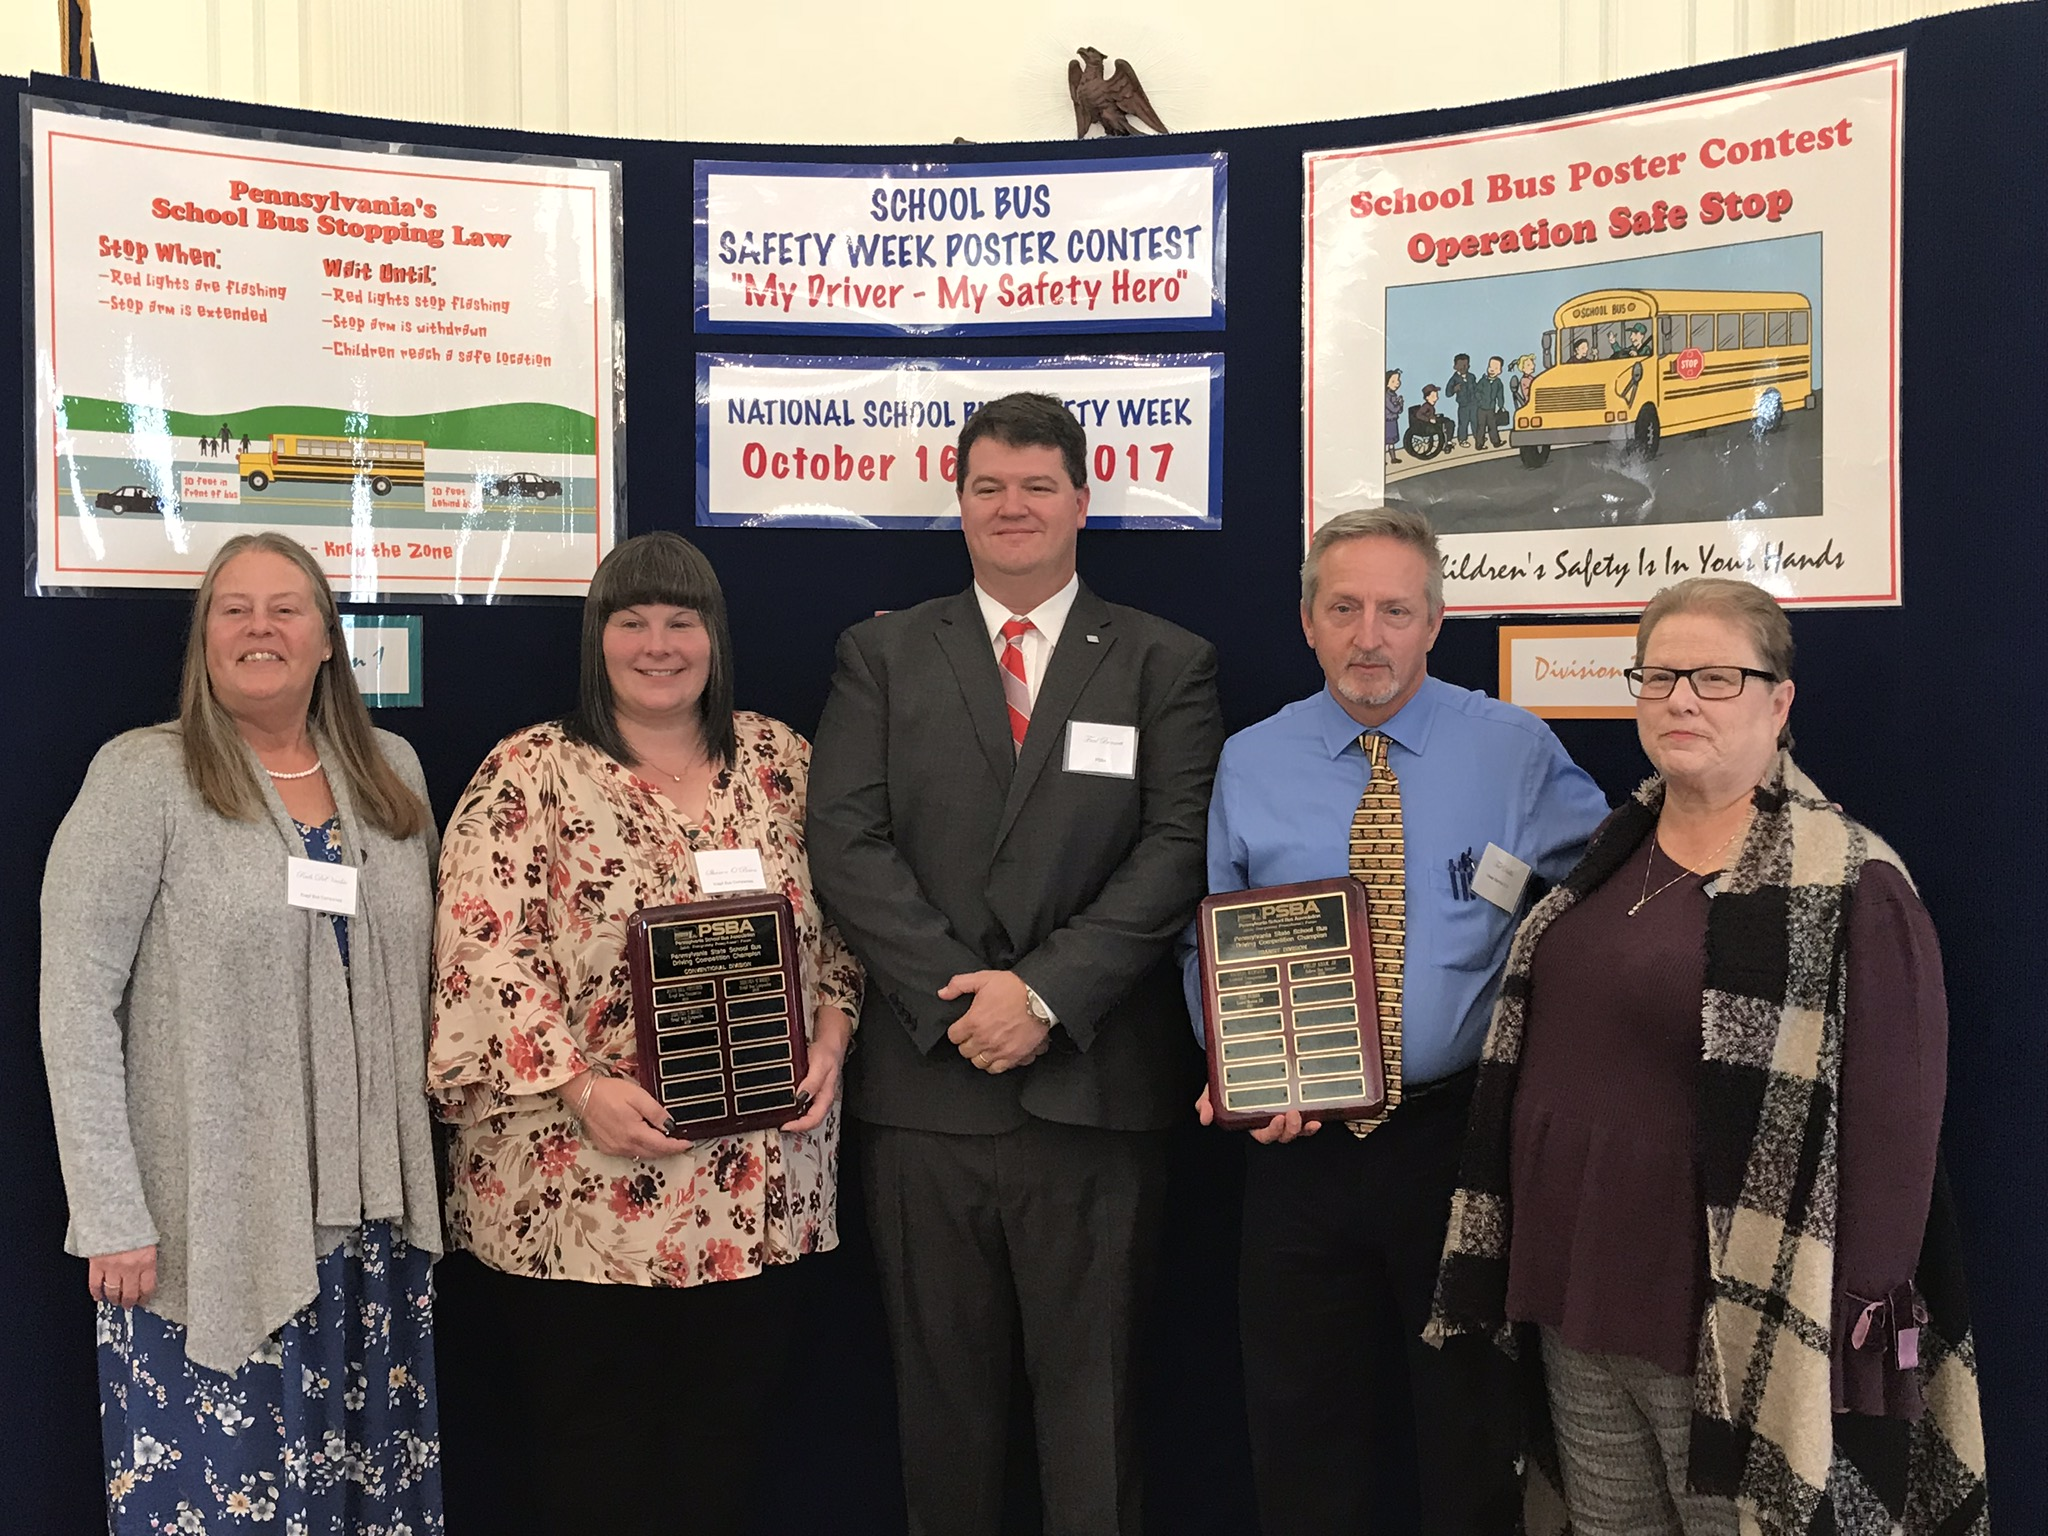 SCHOOL BUS DRIVERS & POSTER CONTEST WINNERS RECOGNIZED AT ANNUAL SCHOOL BUS SAFETY WEEK RECEPTION